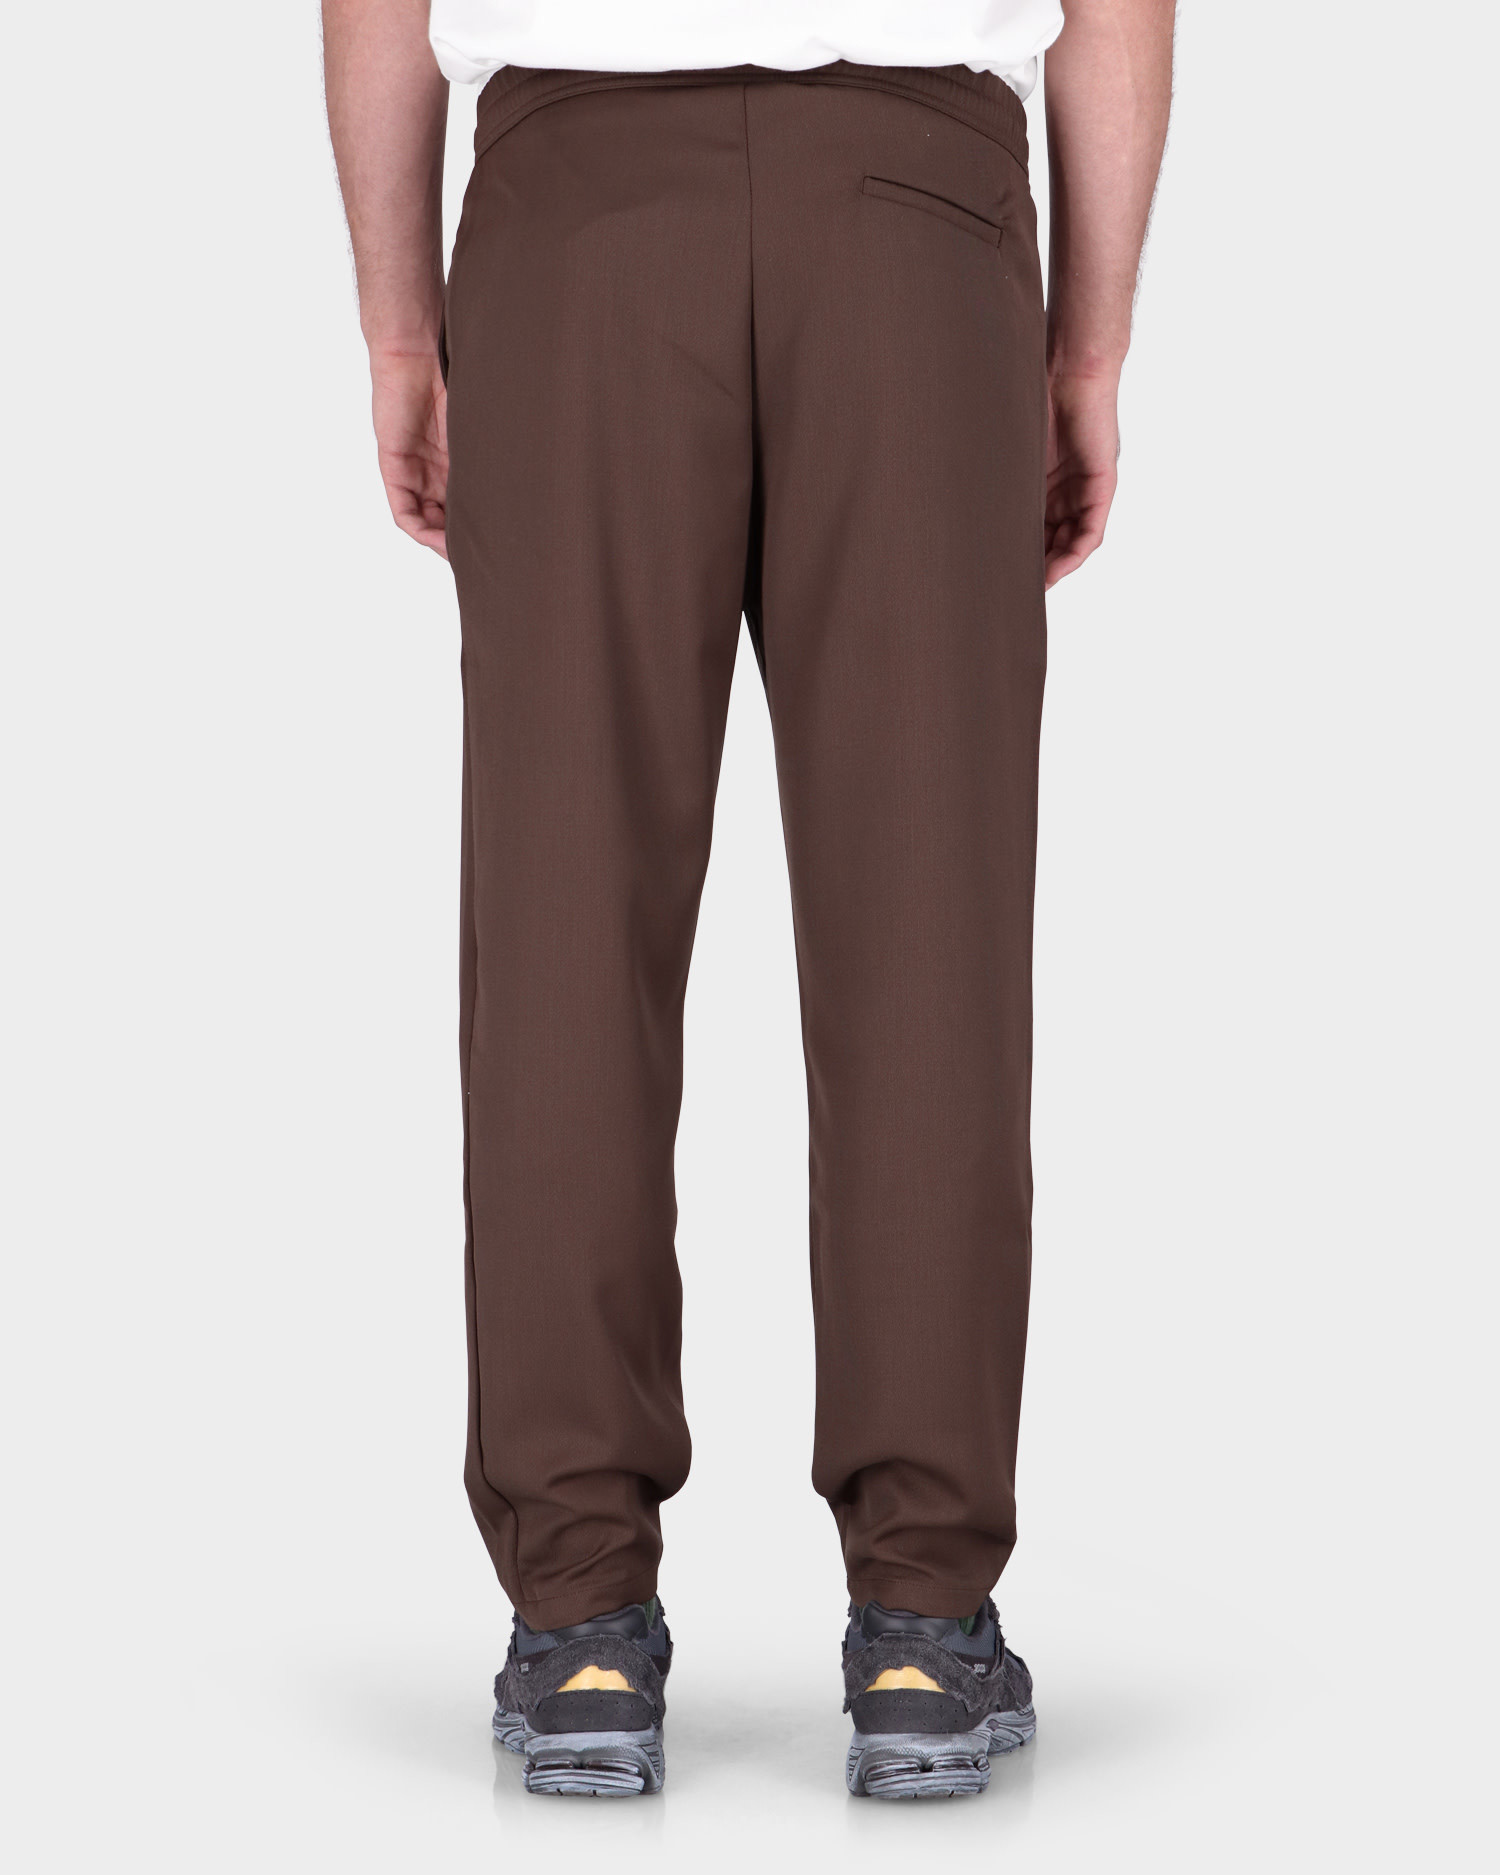 Lack Of Guidance Leo Trousers Brown